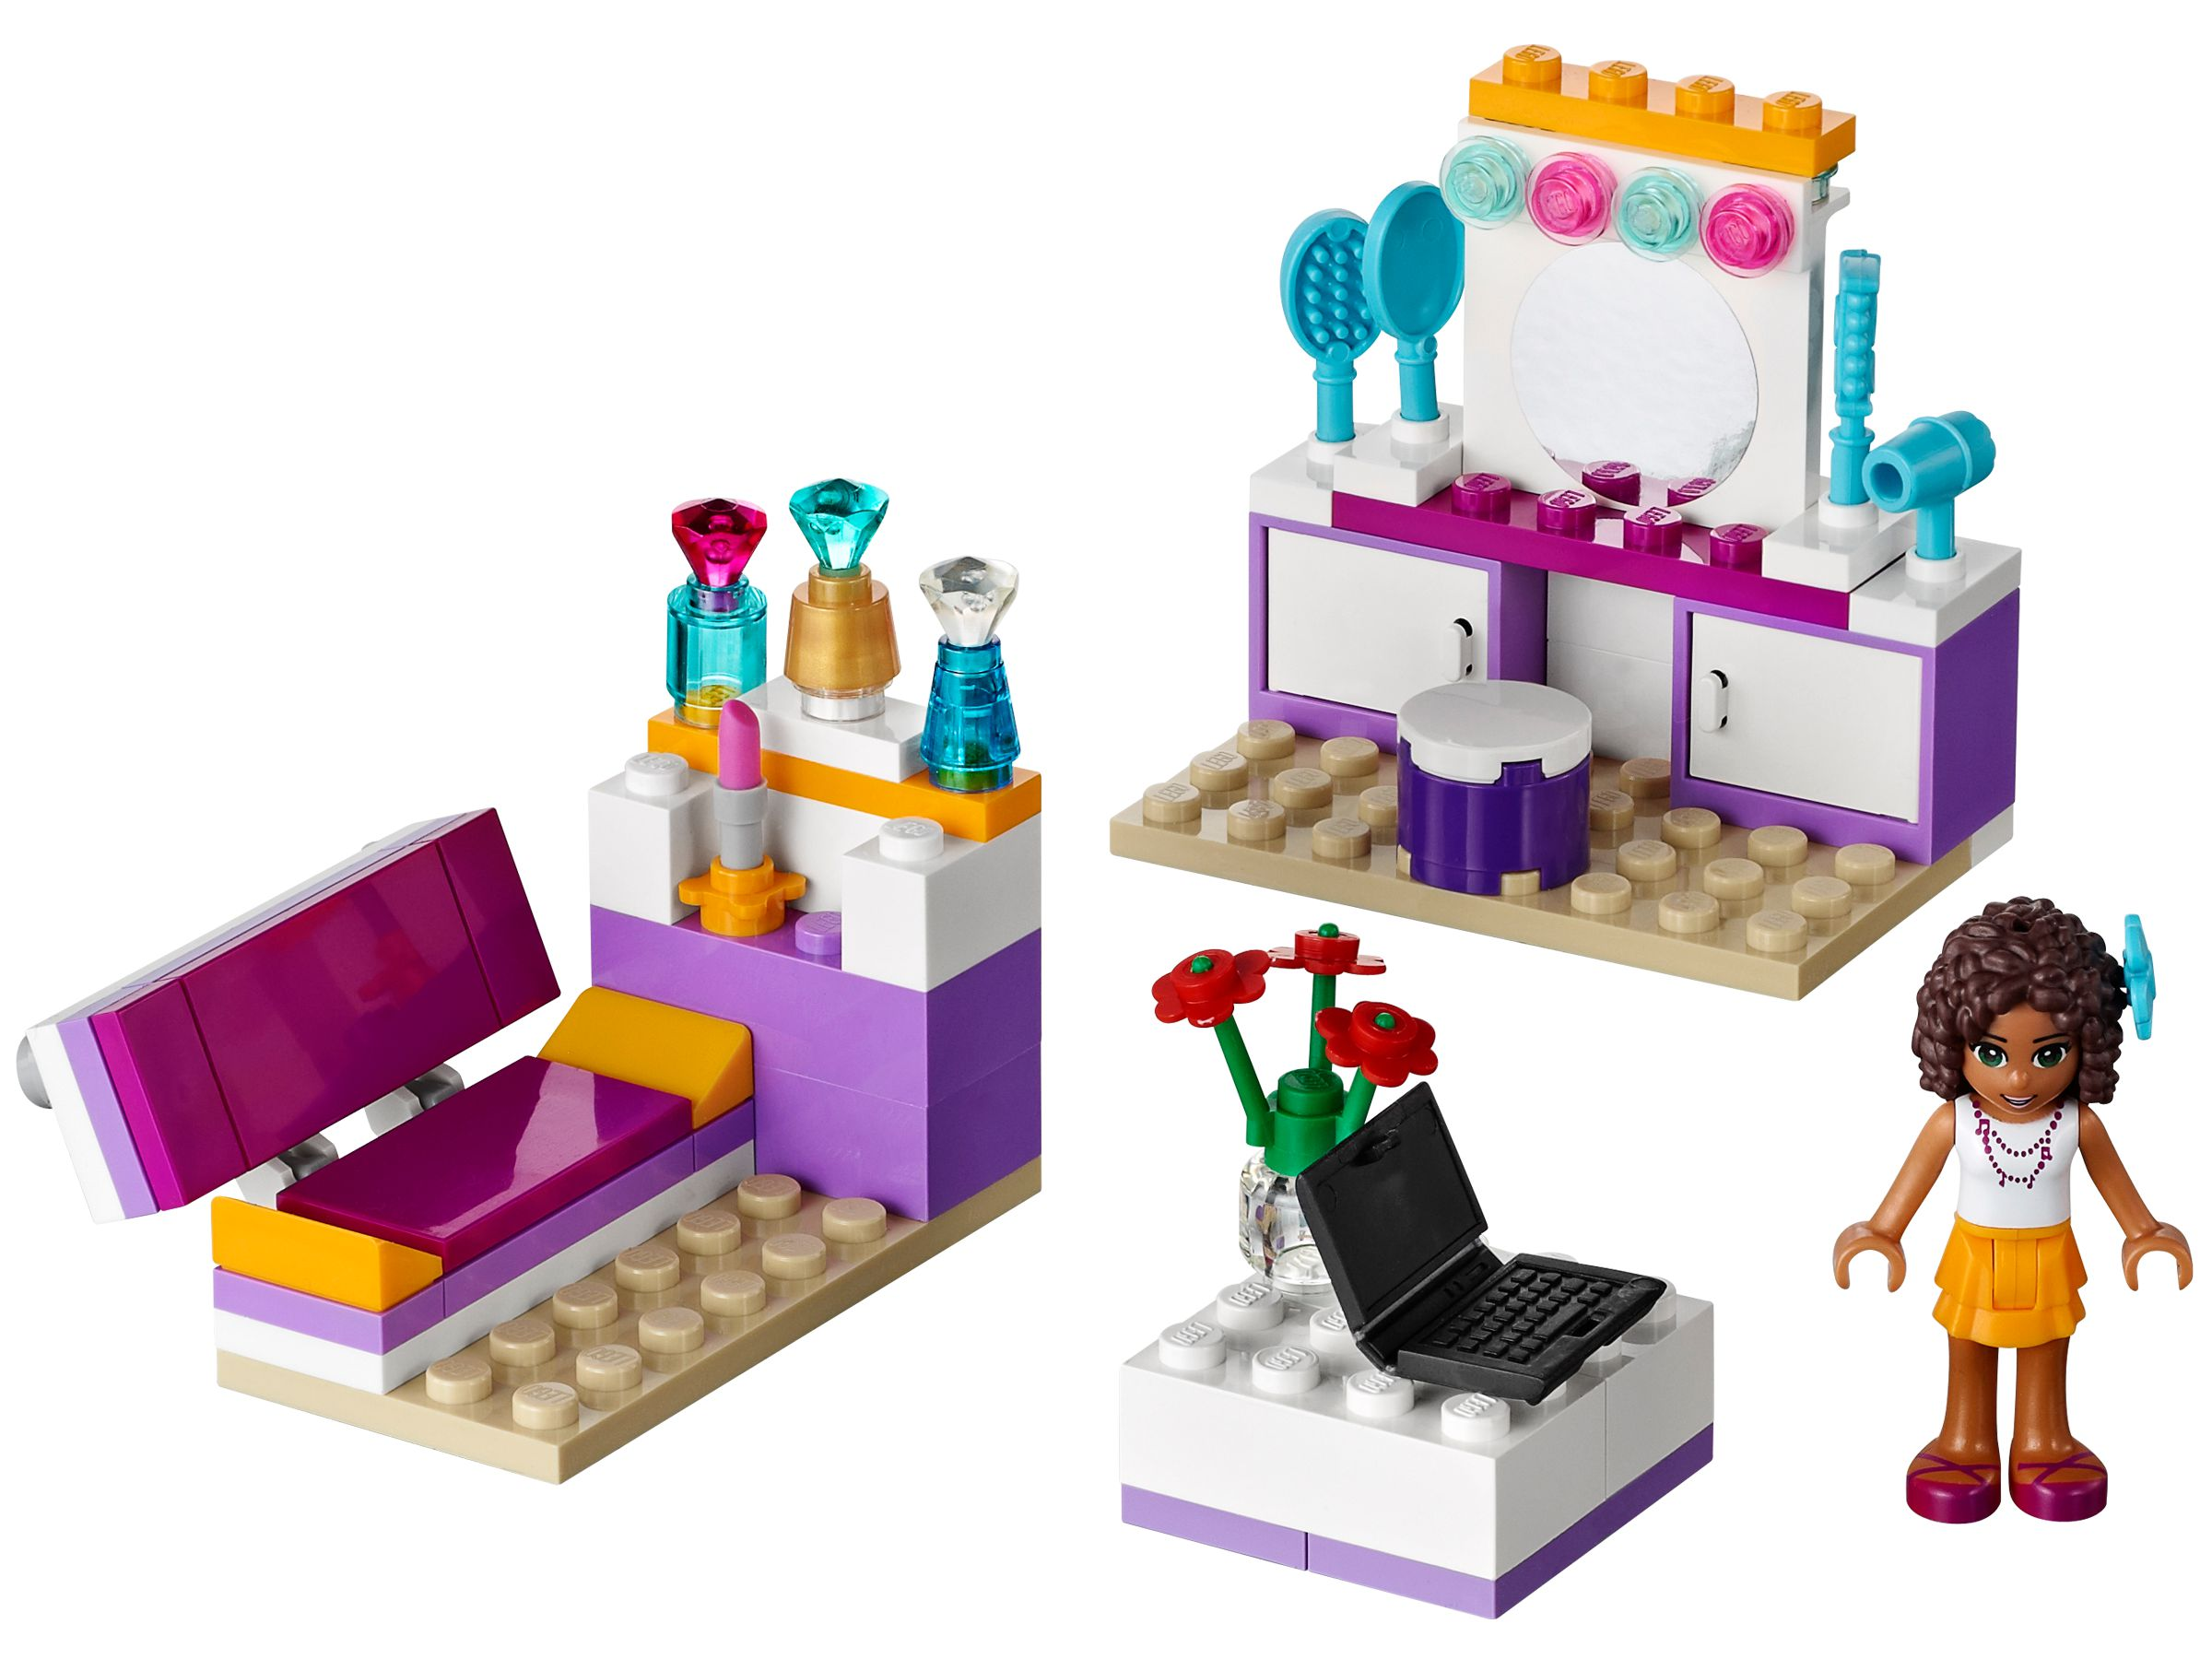 LEGO Friends 41009 Andreas Zimmer LEGO_41009.jpg